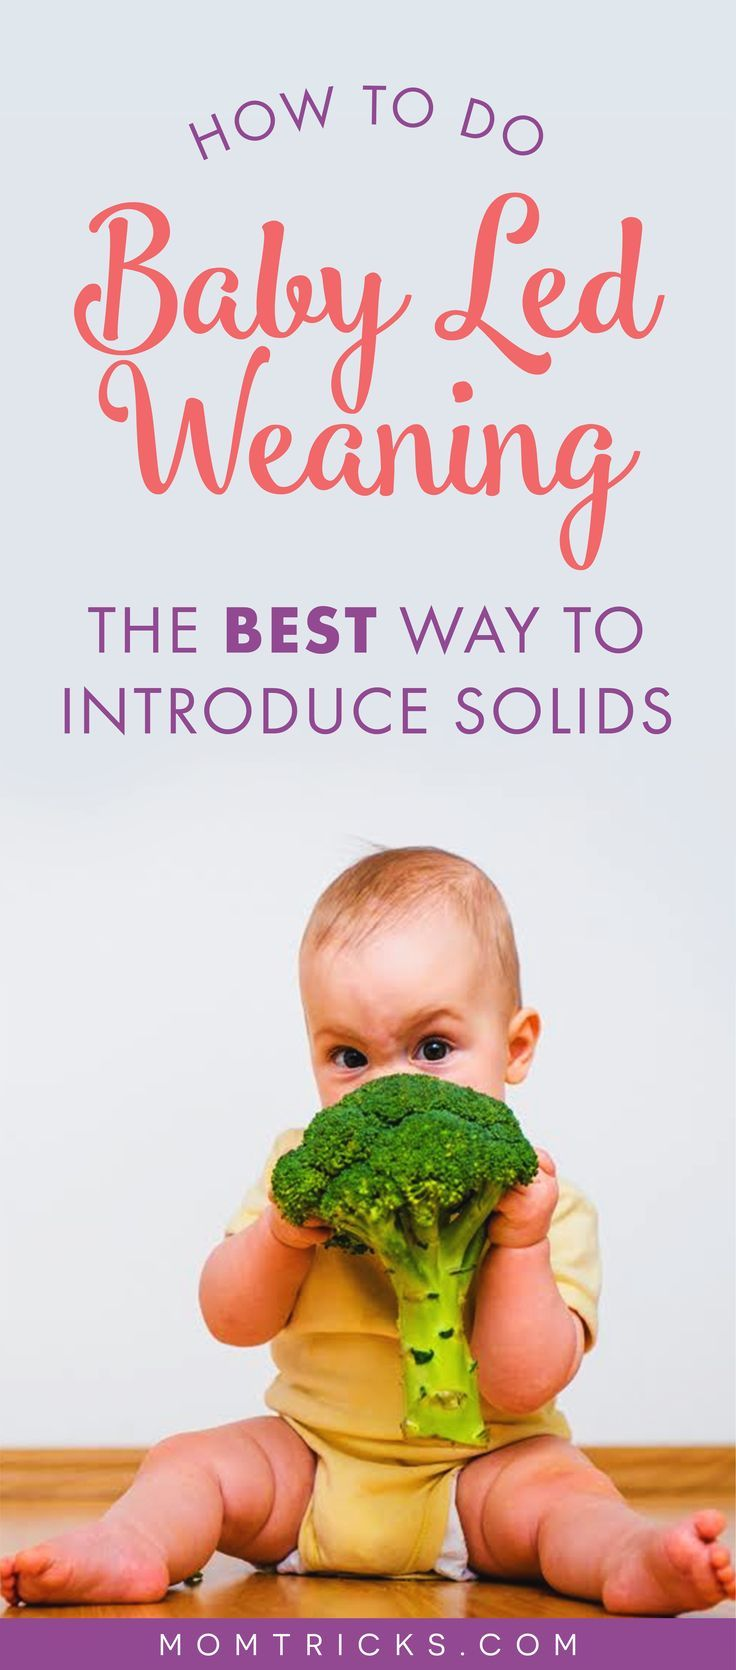 Baby-Led Weaning: The Best Way to Introduce Solids!